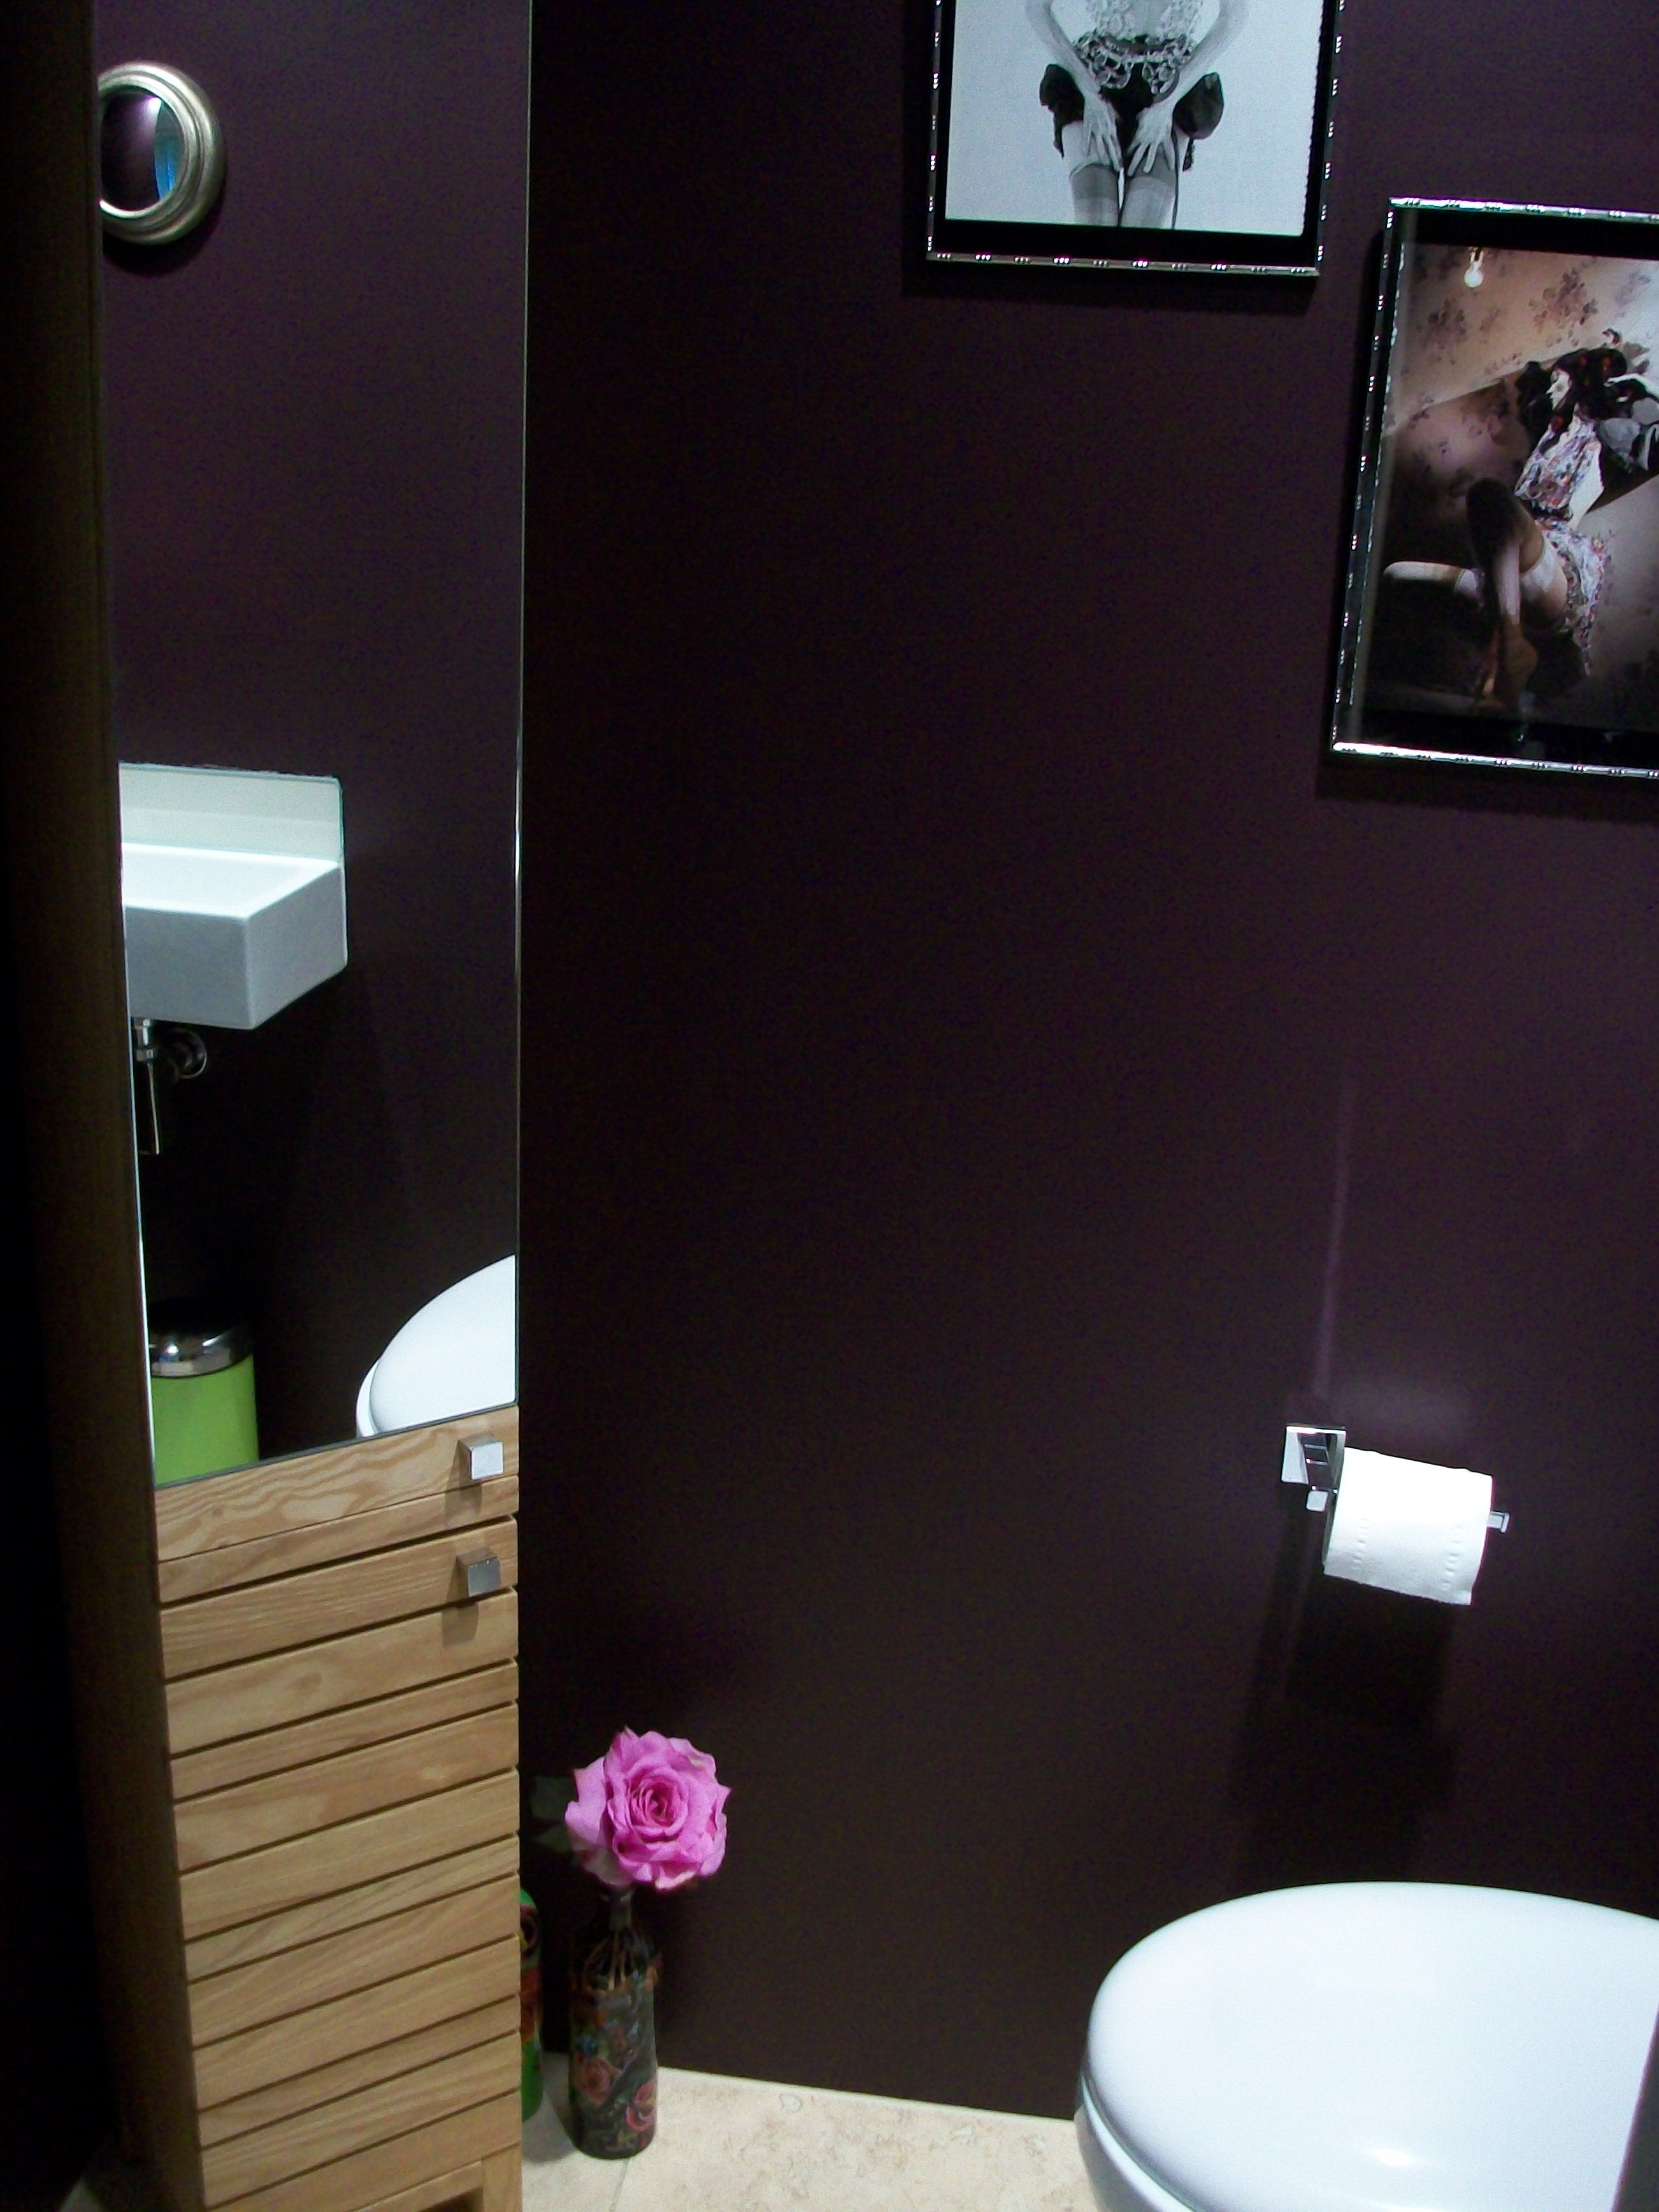 New colors from farrow and ball pictures to pin on pinterest - Modern Em Pelt From Farrow Amp Ball In My Guest Wc Dark